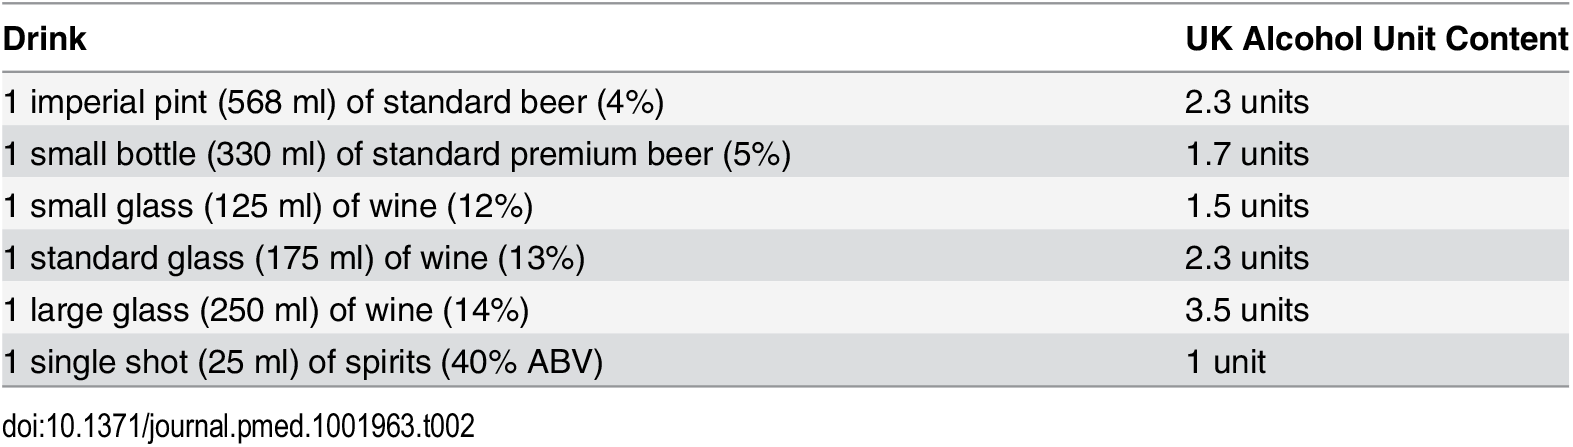 UK alcohol unit content of popular drinks (1 unit = 8 g [10 ml] of pure alcohol).